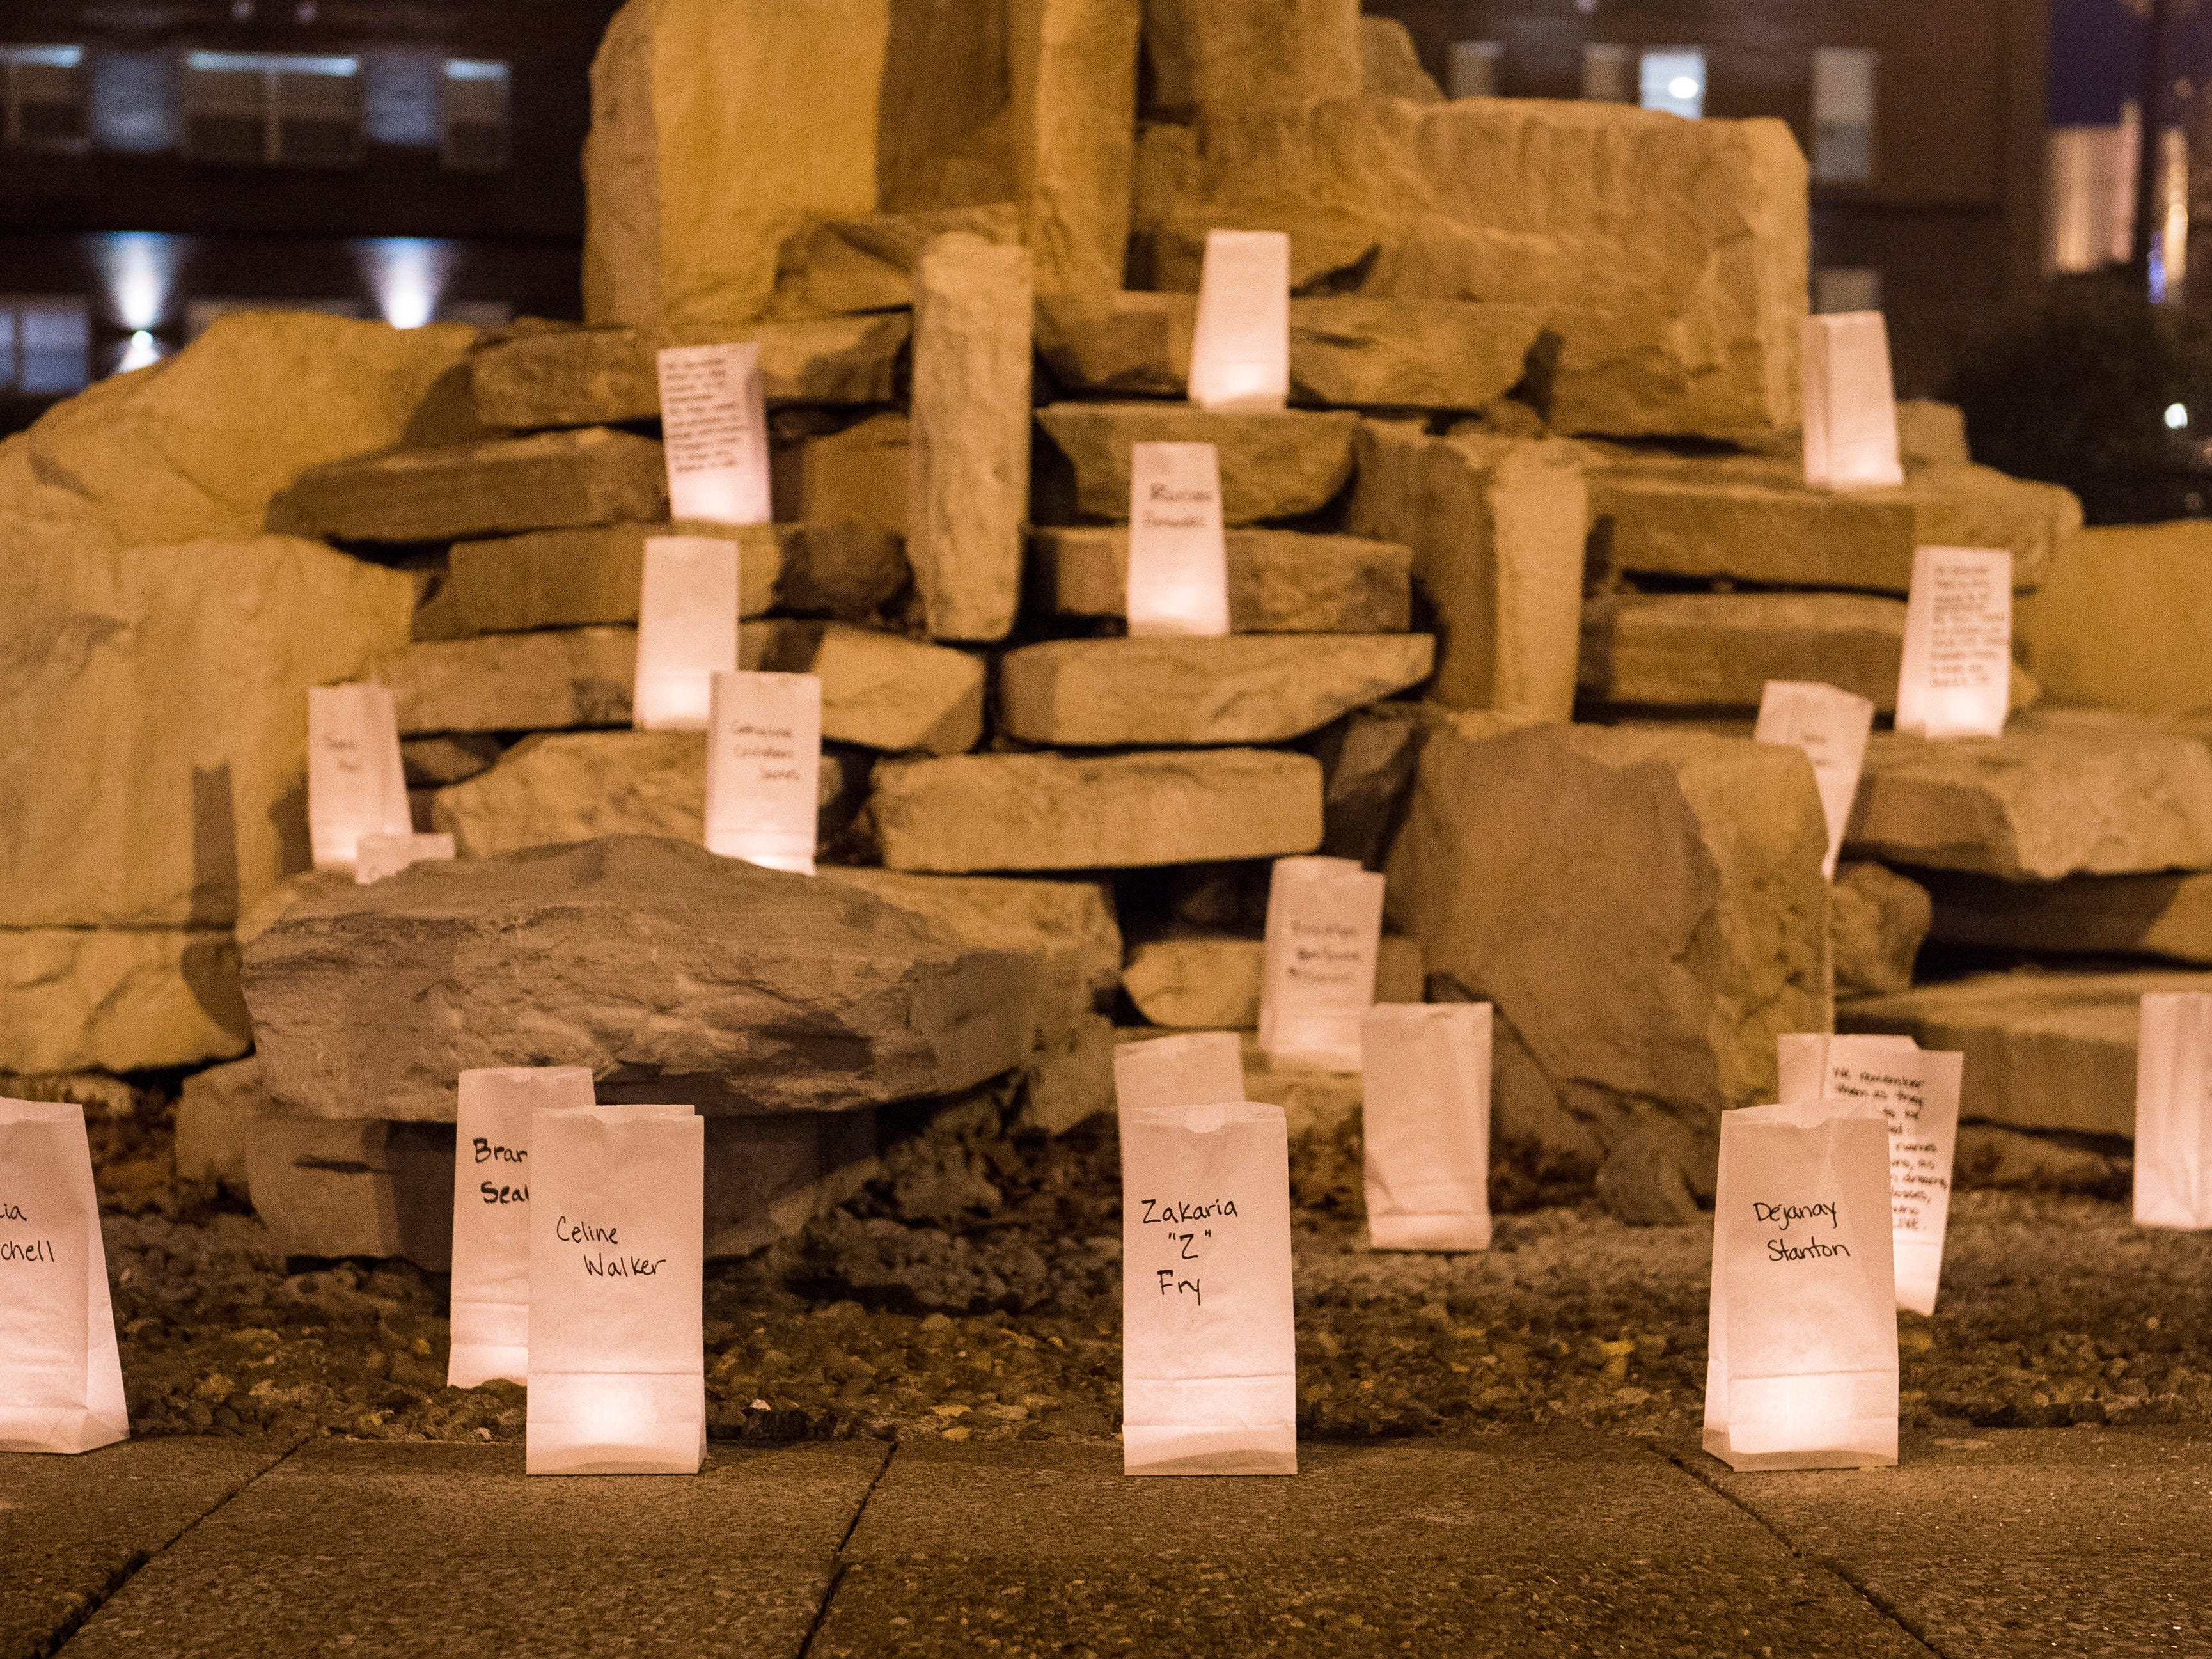 Bags line the fountain at Haynie's Corner to honor those who died by violence in 2018 during the Transgender day of Remembrance candlelight vigil hosted by local support group Gender Warriors  Tuesday, Nov. 20, 2018.